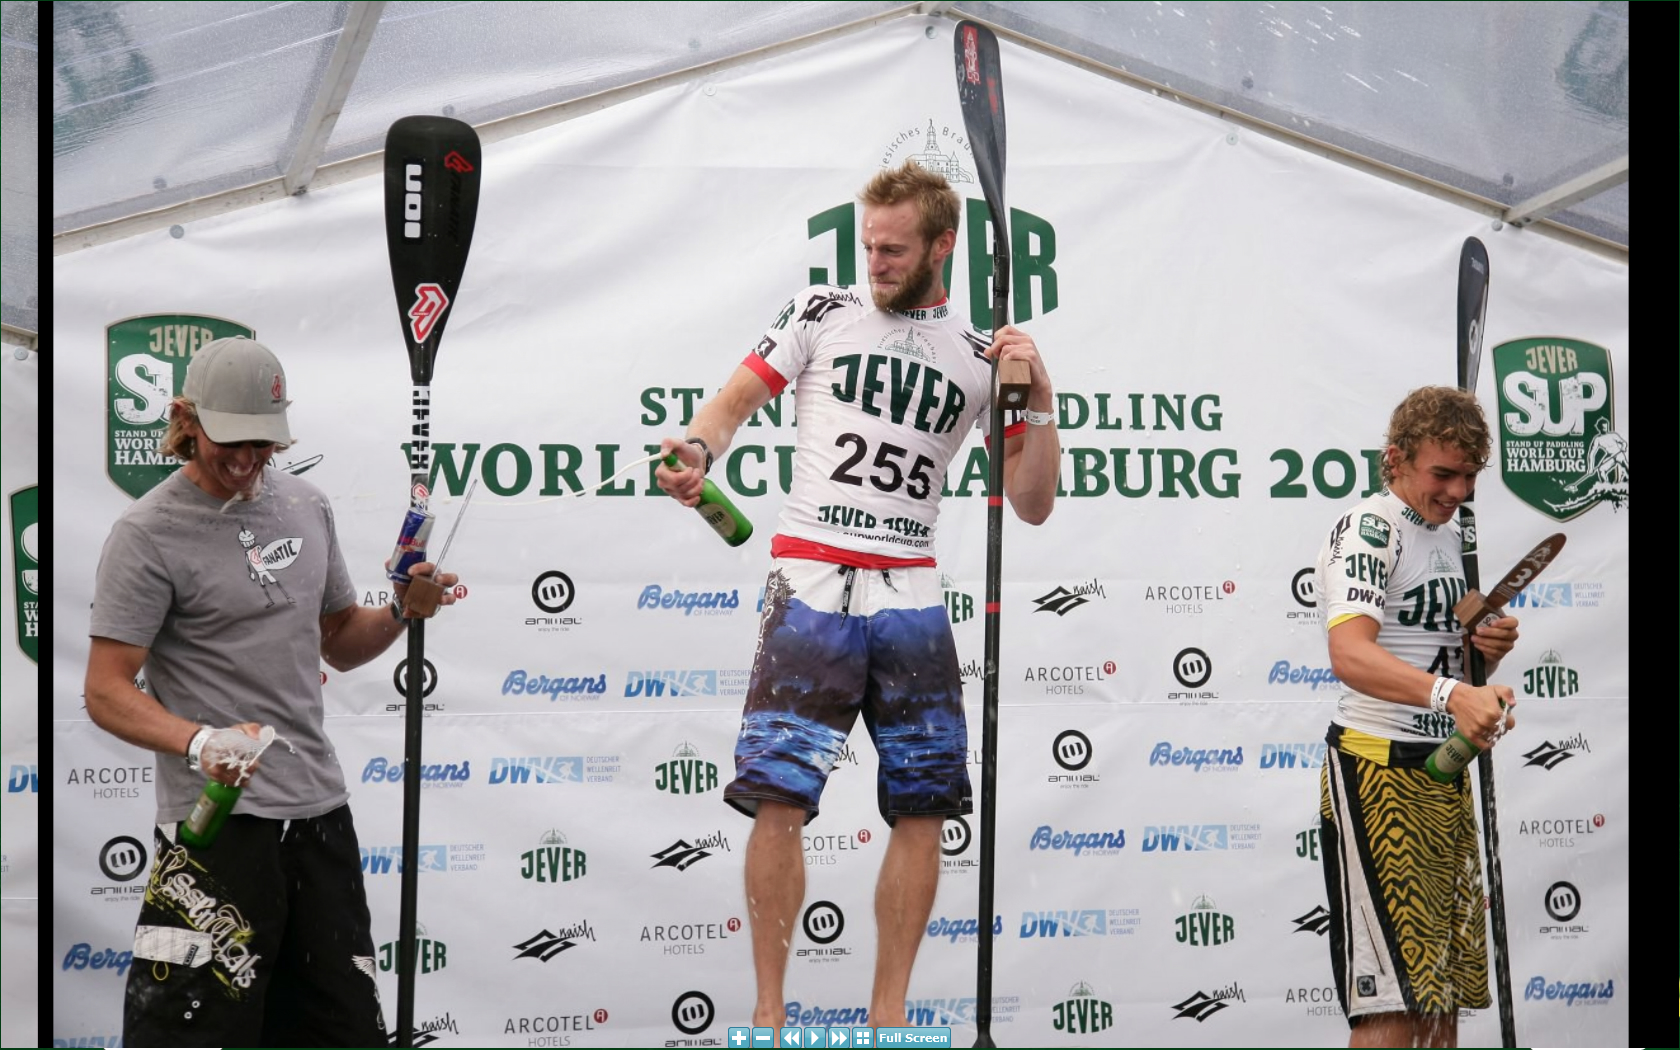 Jever SUP Worldcup 1st Place Amateur Distance